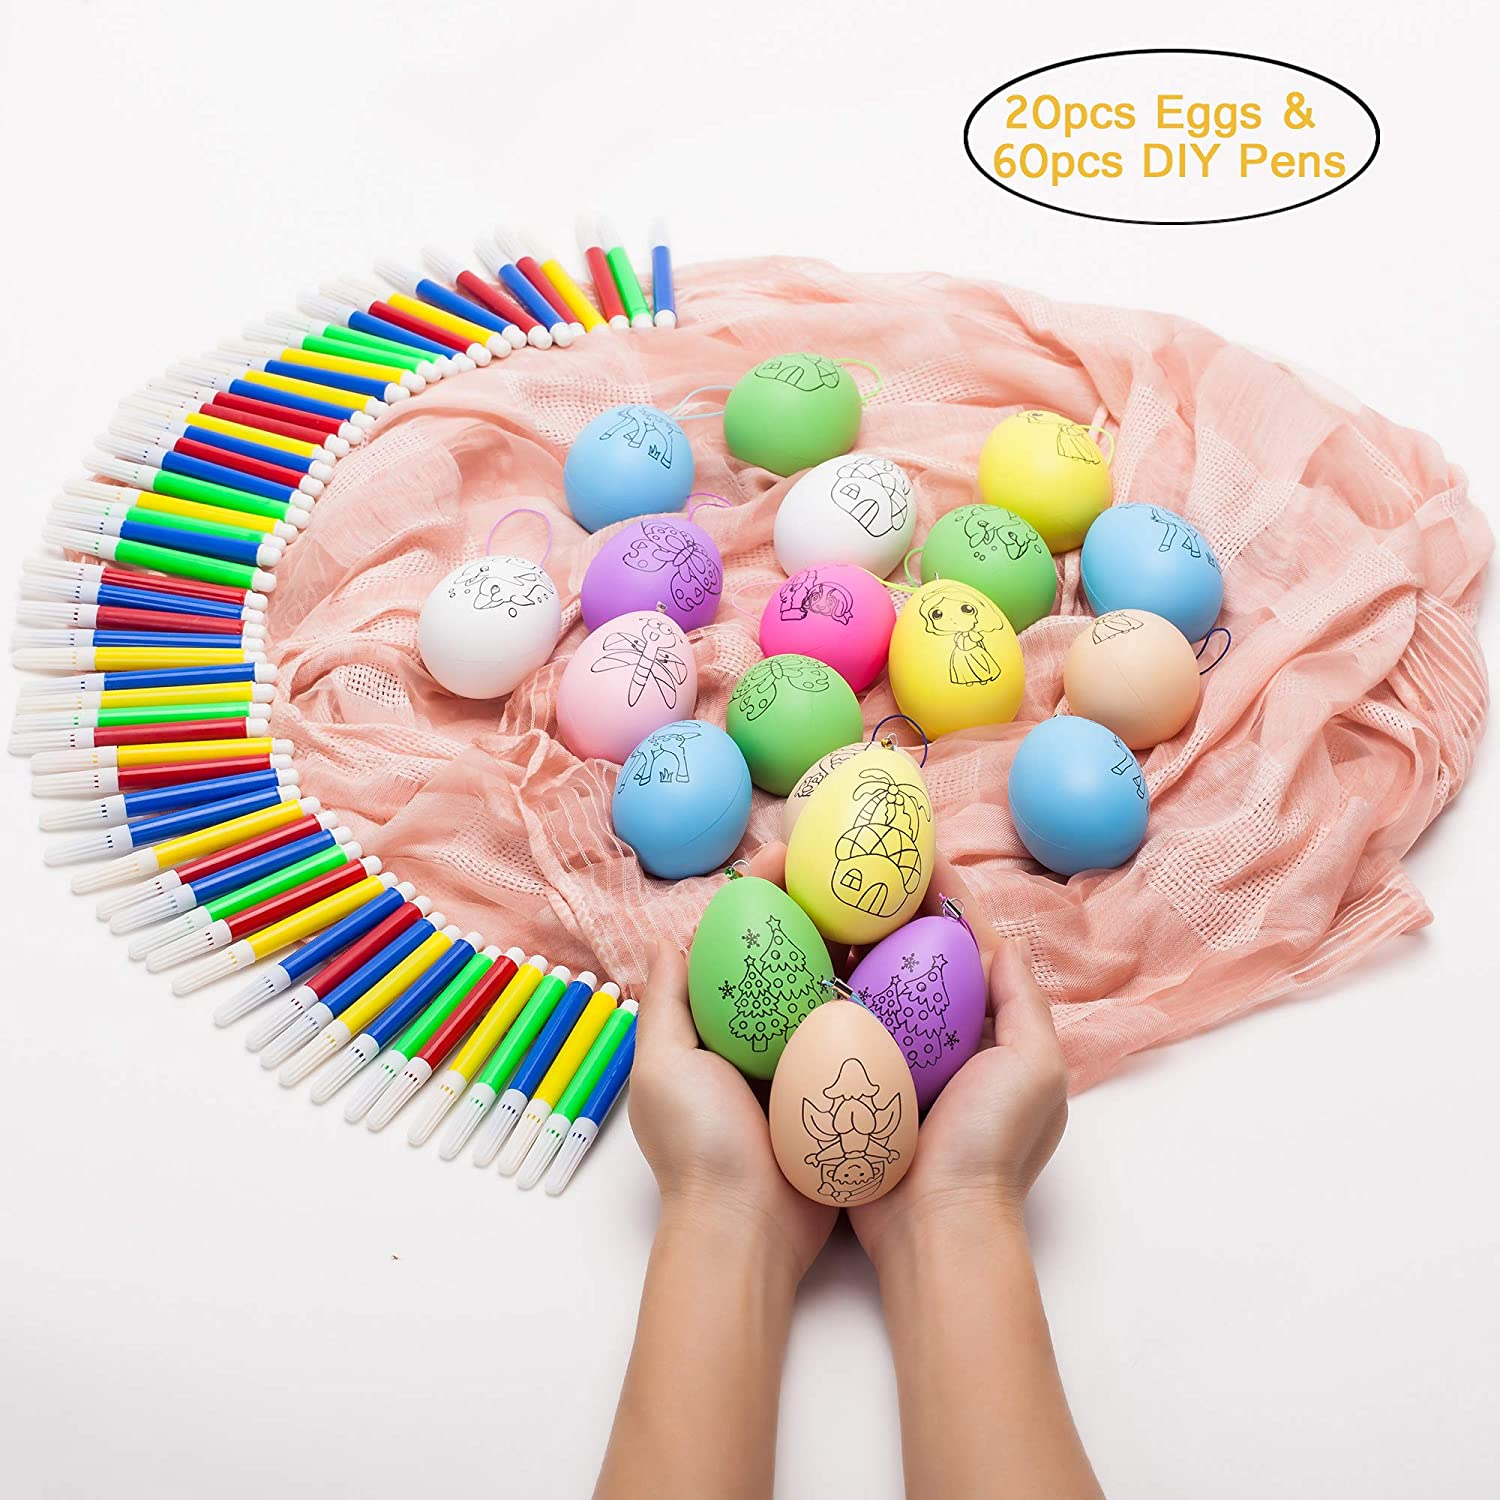 Easter Eggs - 20-Pack of Decorative Painting Kit with 60pcs Water Color DIY Pens Hanging Easter Eggs for DIY Crafts and Assorted Easter Ornaments, Multicolor, 3.15 x 1.78 x 1.78 Inches